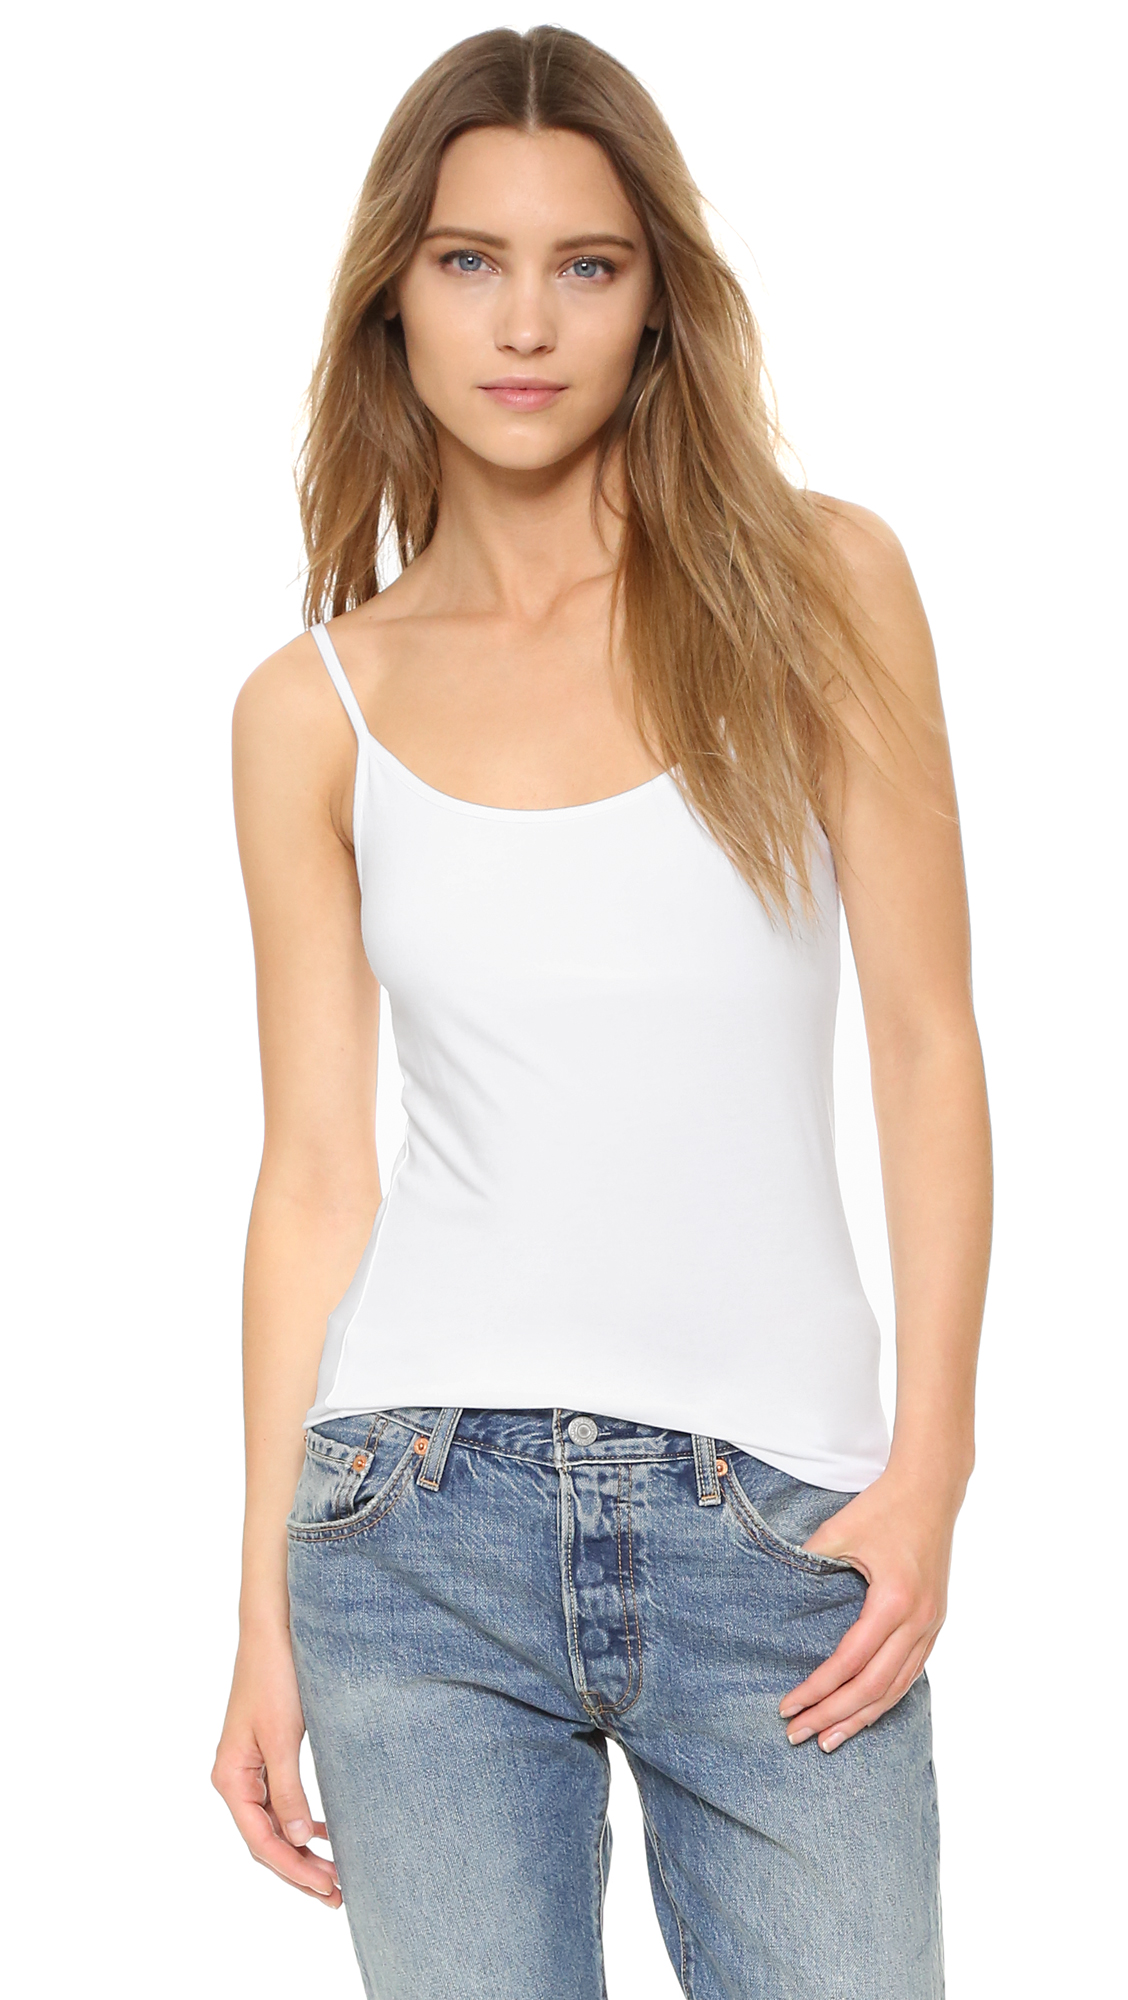 Splendid Cami Tank with Bra - White